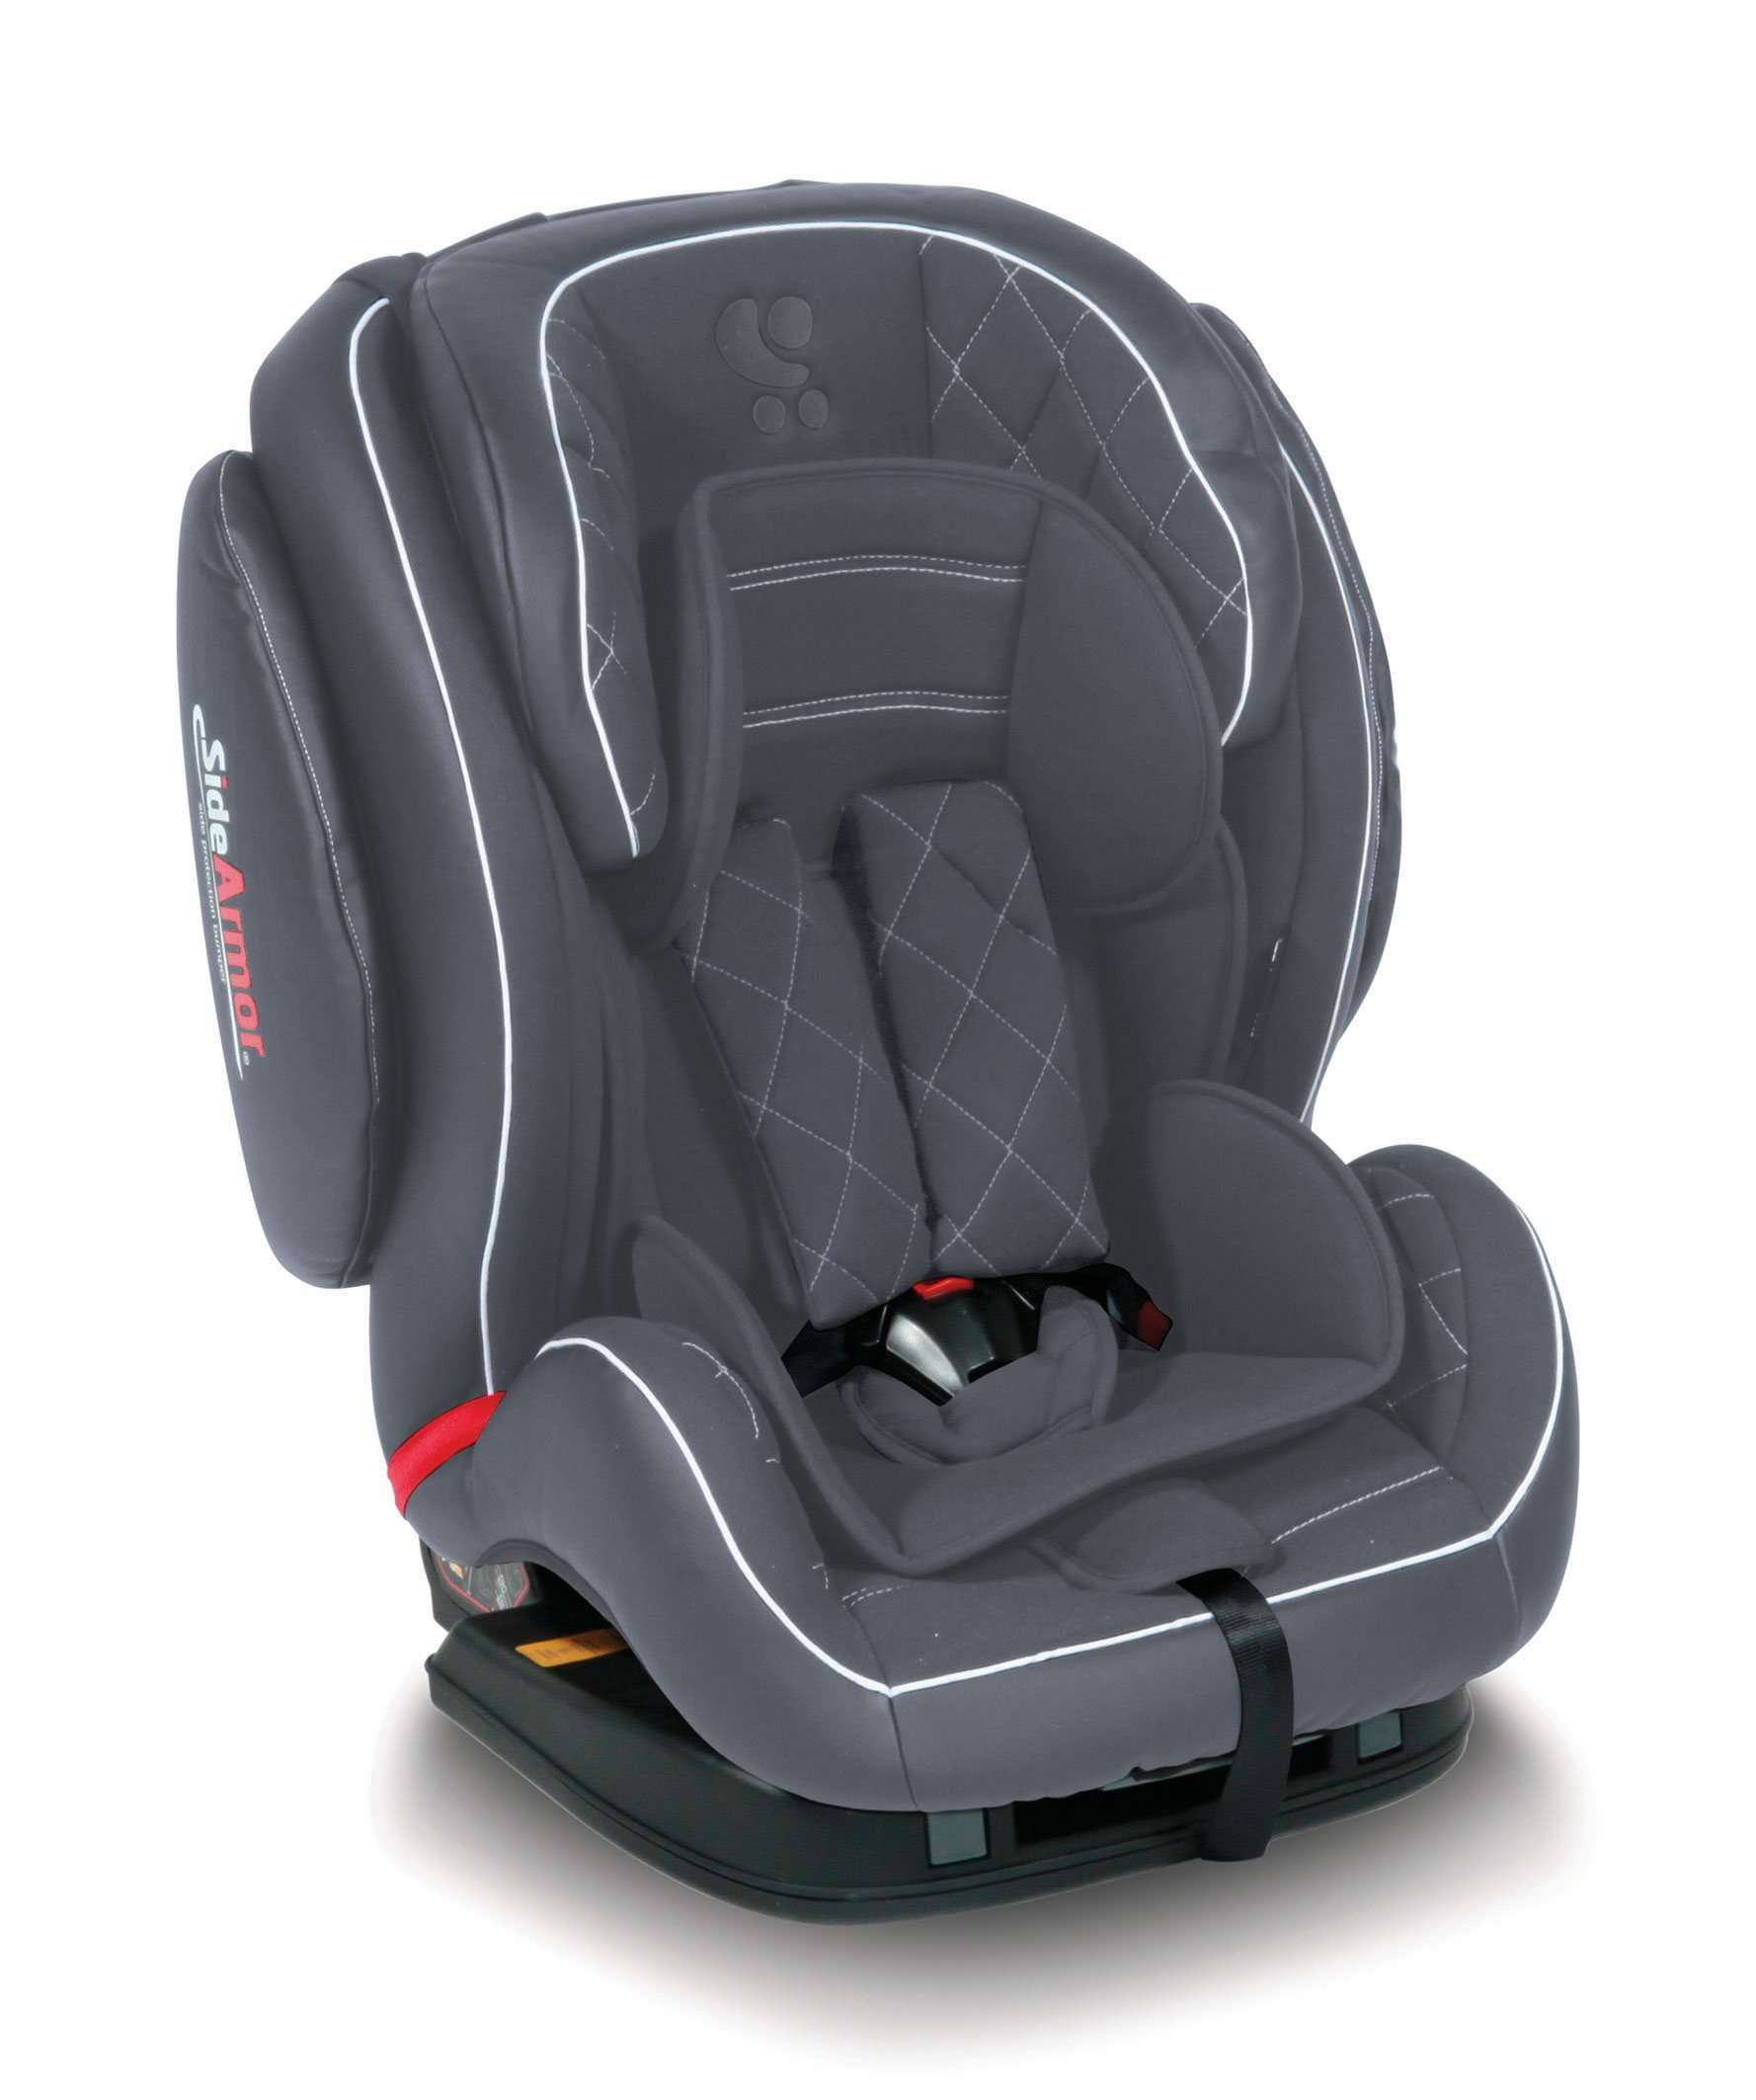 Автокресло Lorelli Mars SPS Isofix (Серый Dark Grey Leather 1838)